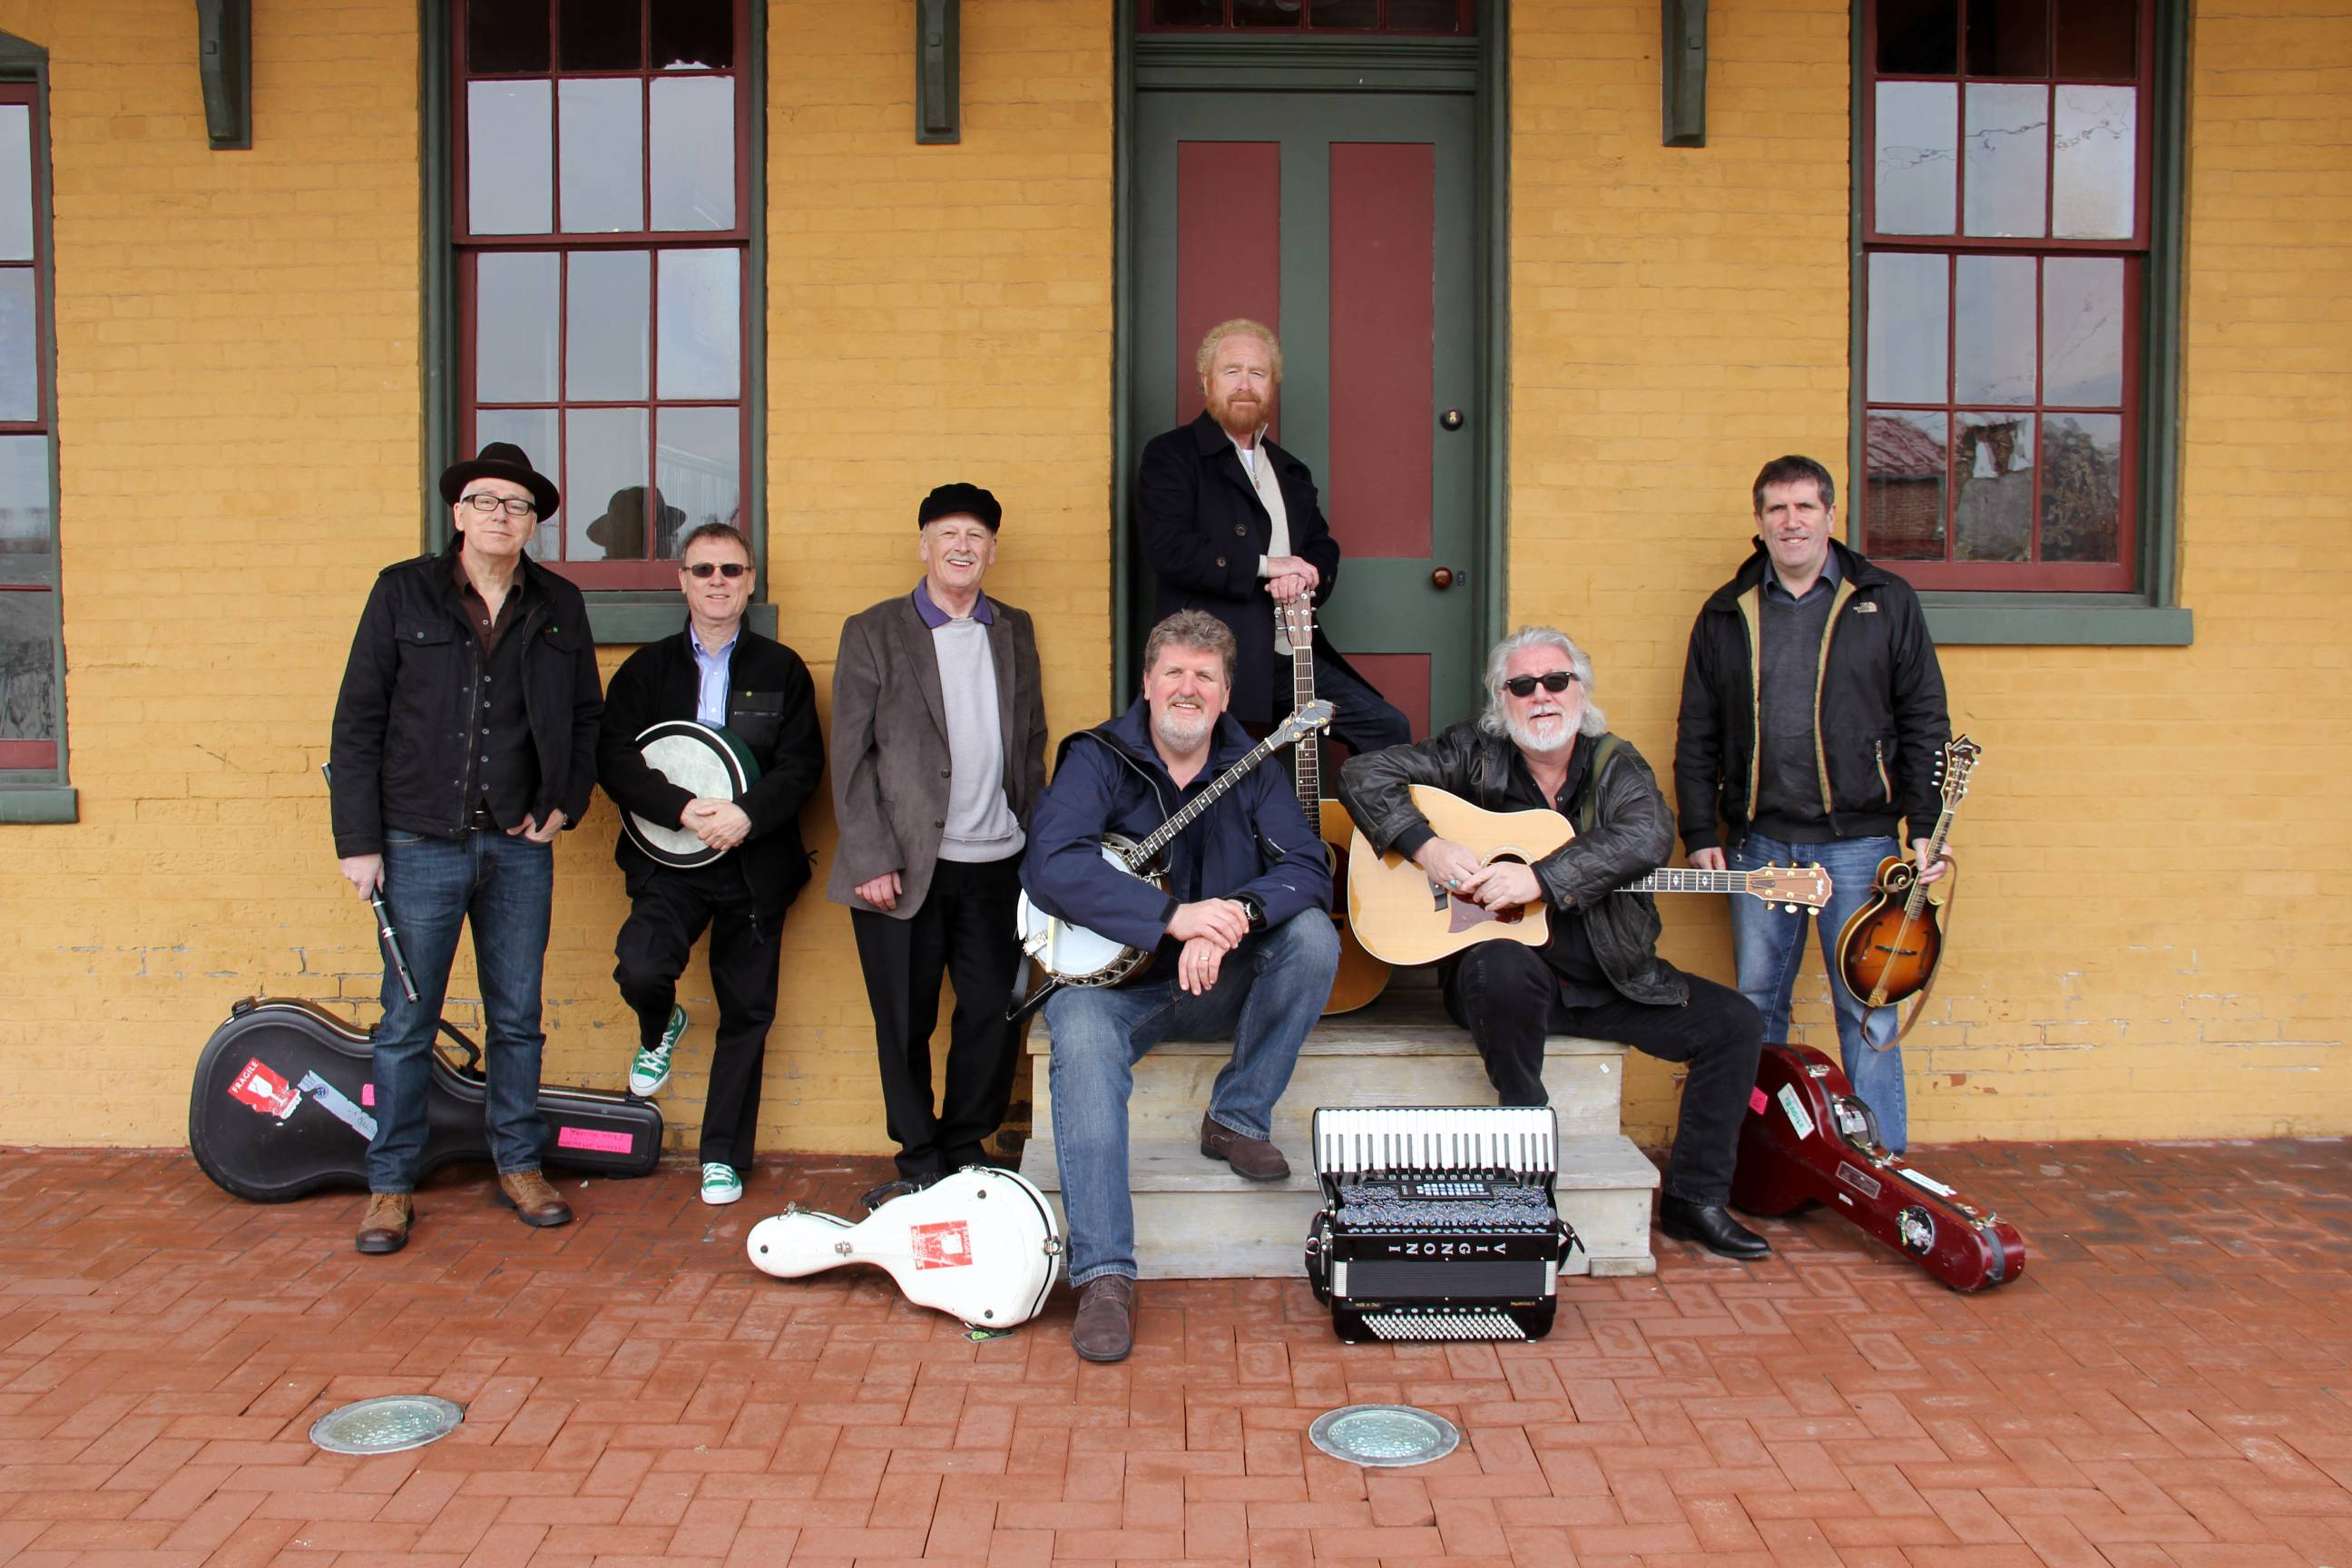 The Irish Rovers' Farewell Tour stops at CLC on Friday, Feb. 21.